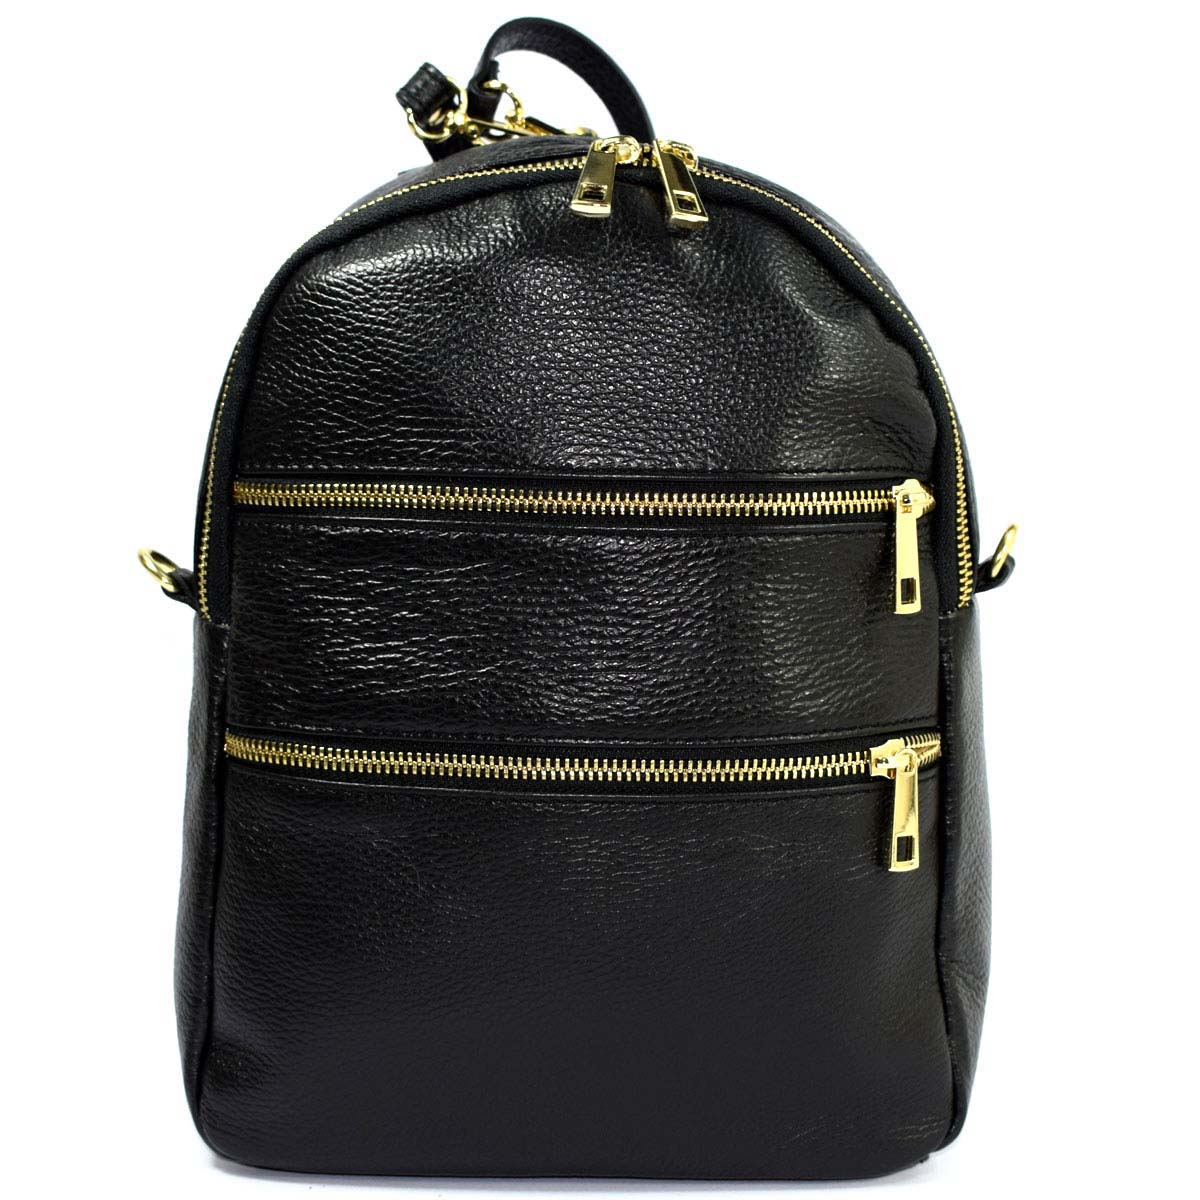 12735d  backpack zippers by Bottega Fiorentina